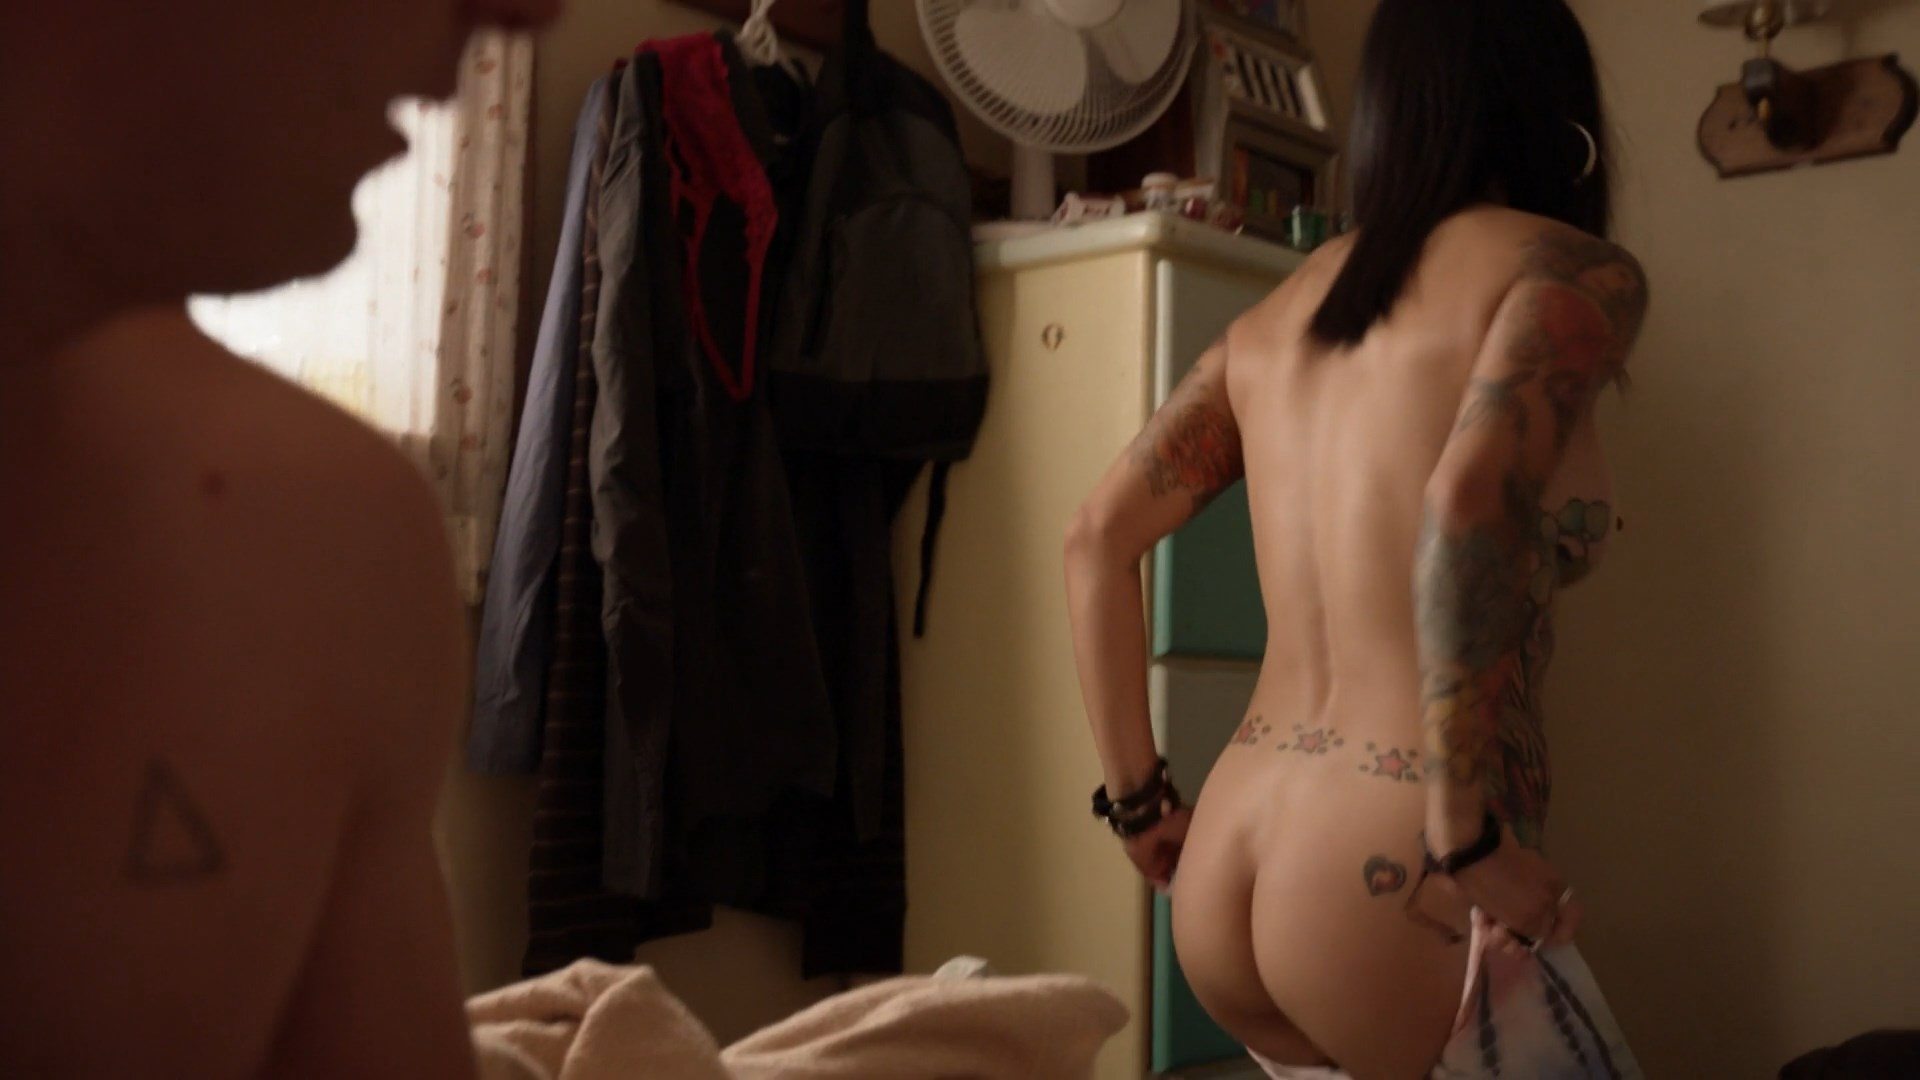 Levy Tran - Shameless s08e09 (2017) HD 1080p